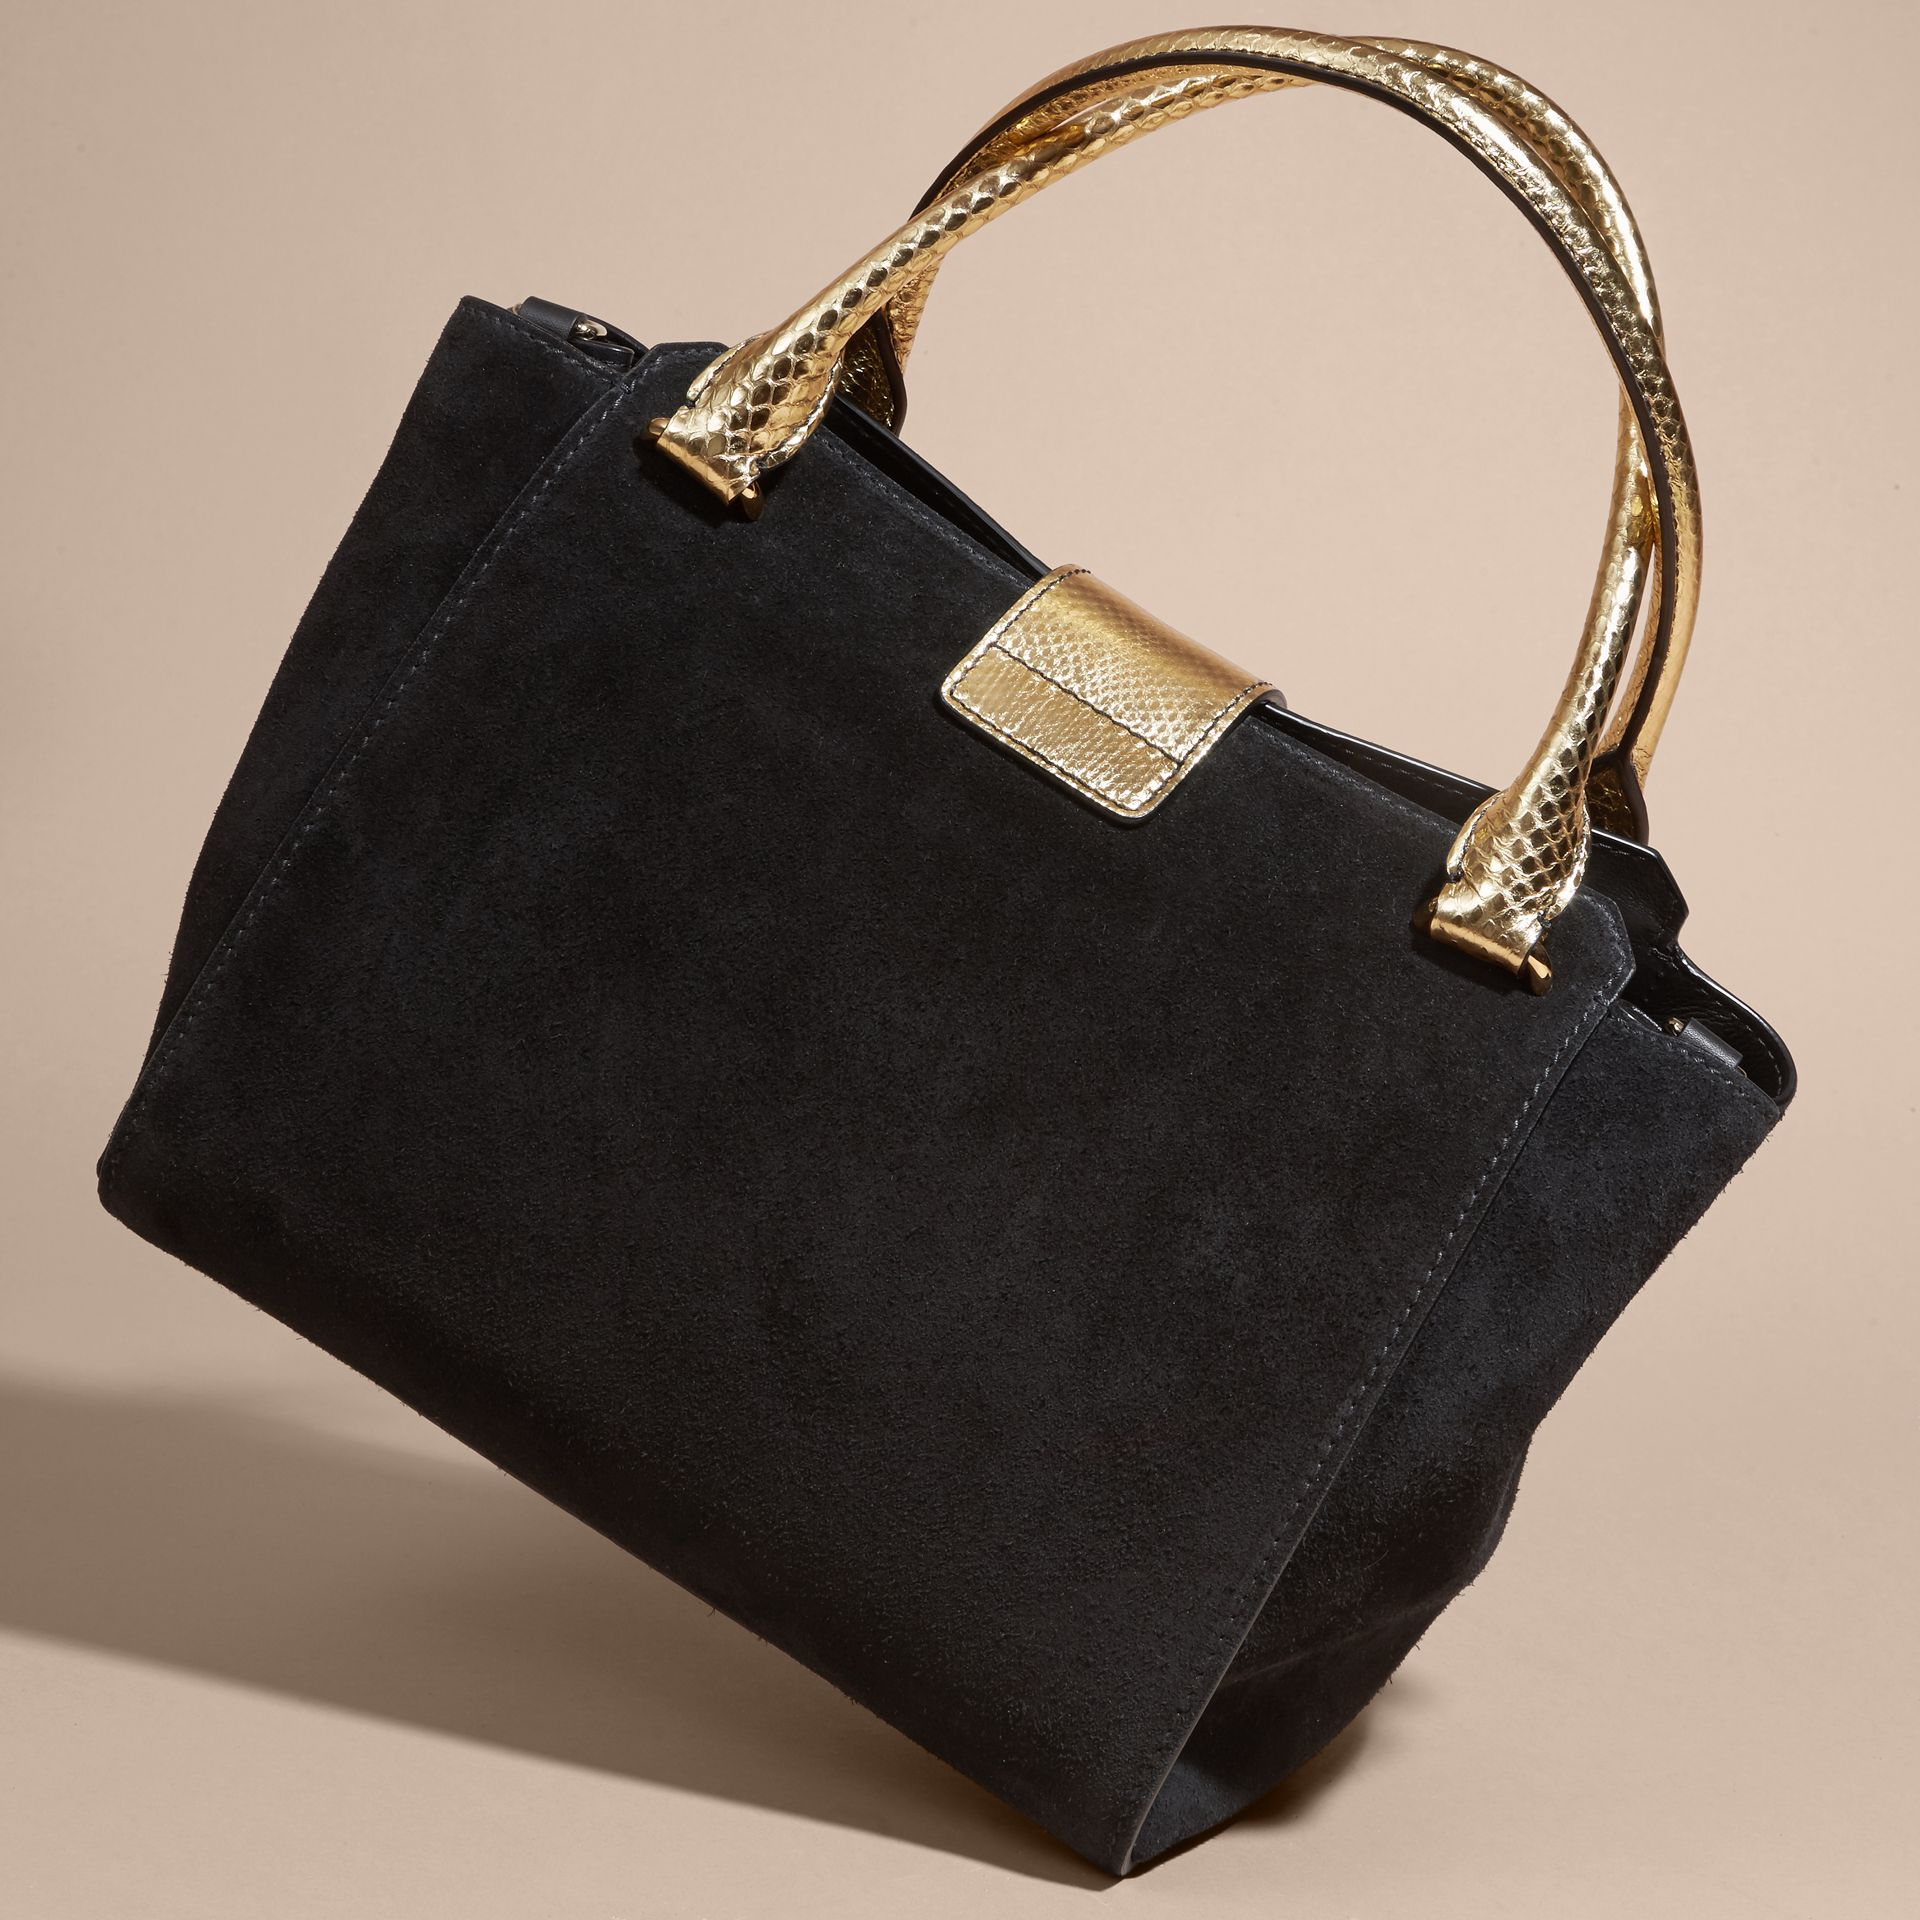 Black/gold The Medium Buckle Tote in Suede and Snakeskin - gallery image 4